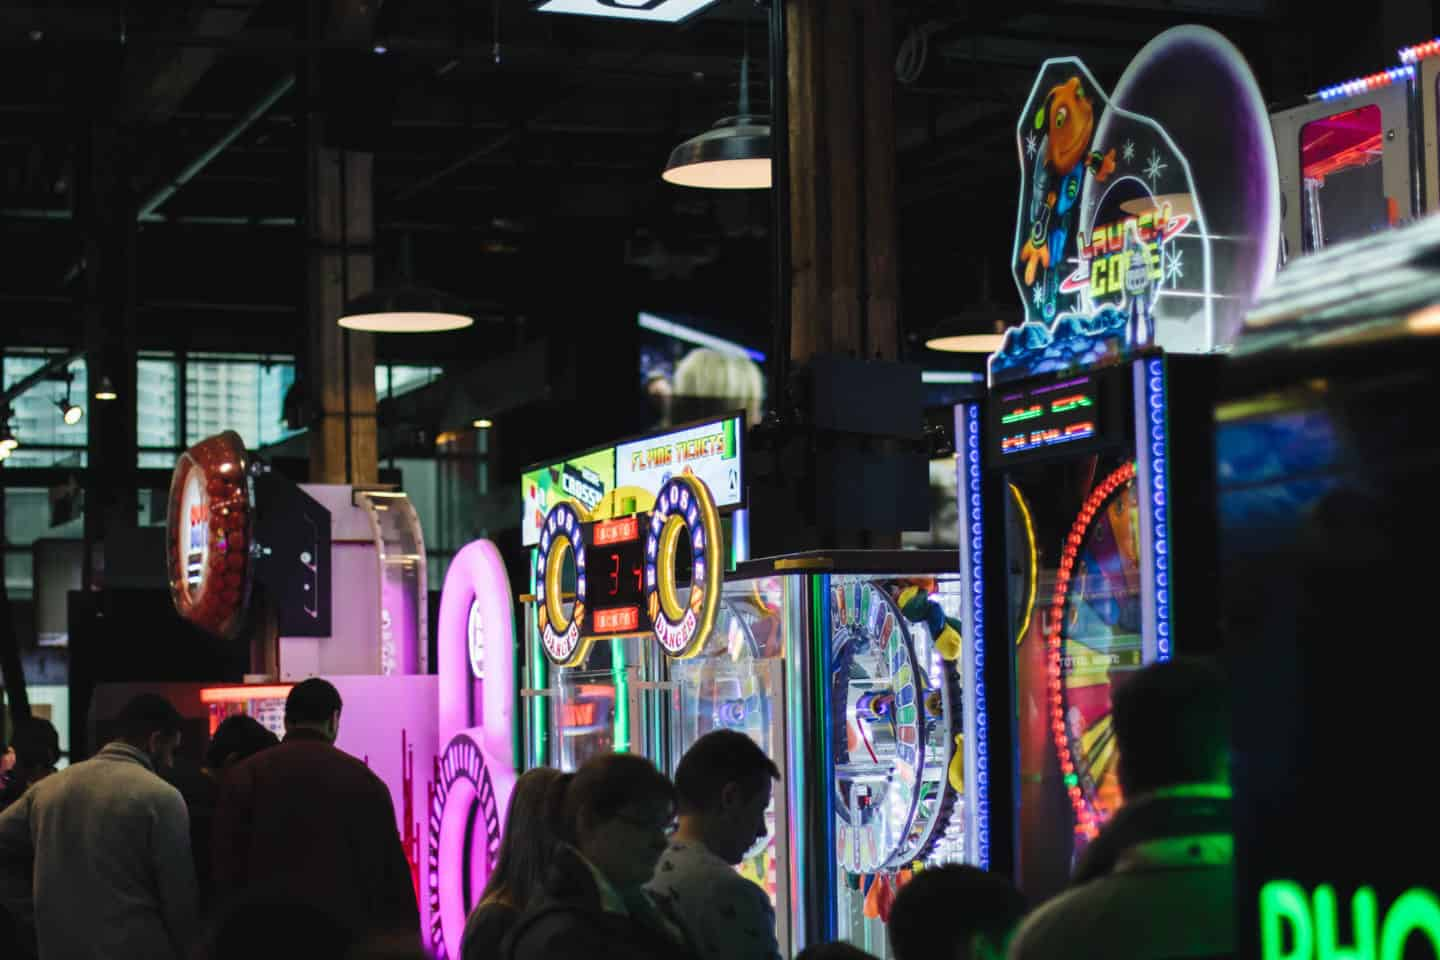 The Rec Room is a fun spot to play arcade games and experience virtual reality in Toronto